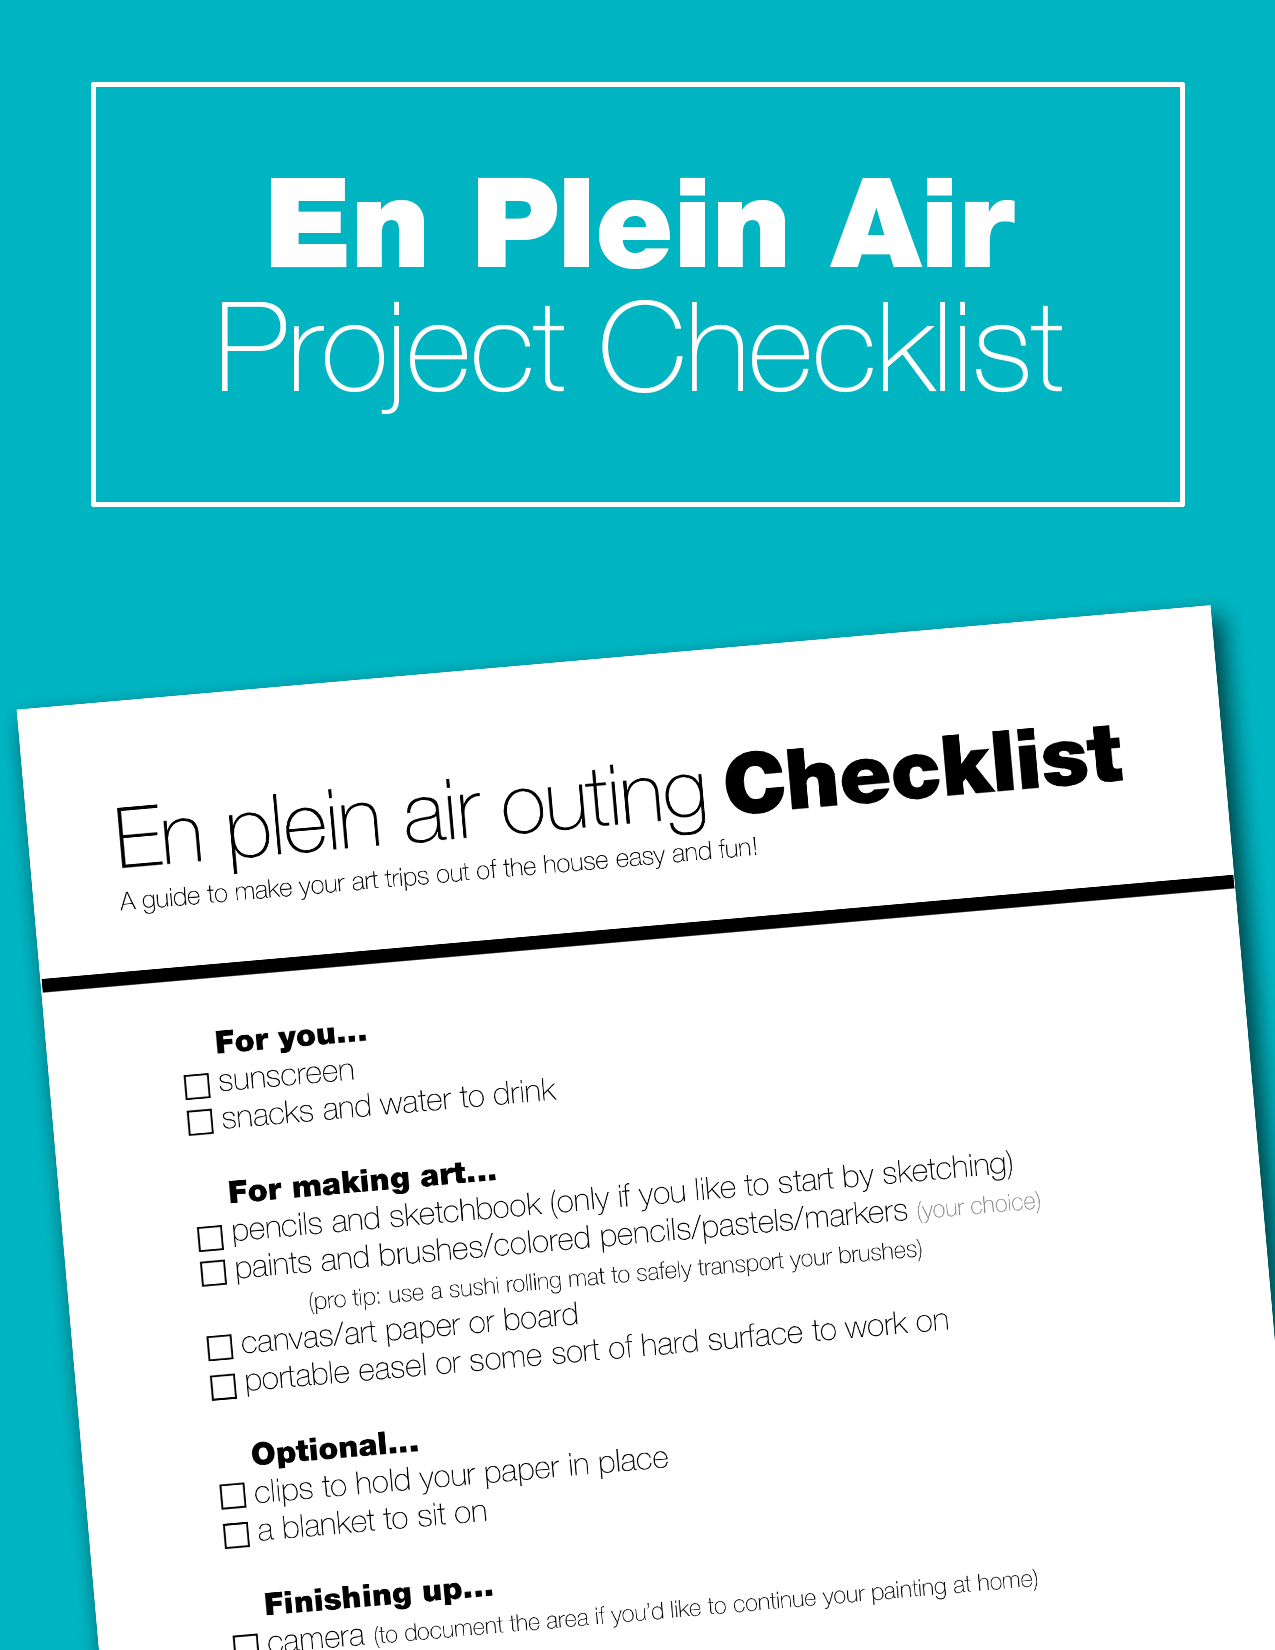 Enjoy a day of painting outdoors with your kids. This checklist will guide you through all the things you'll need to make your day fun and stress-free. En plain air painting is a great way to unwind, enjoy nature, and get creative.